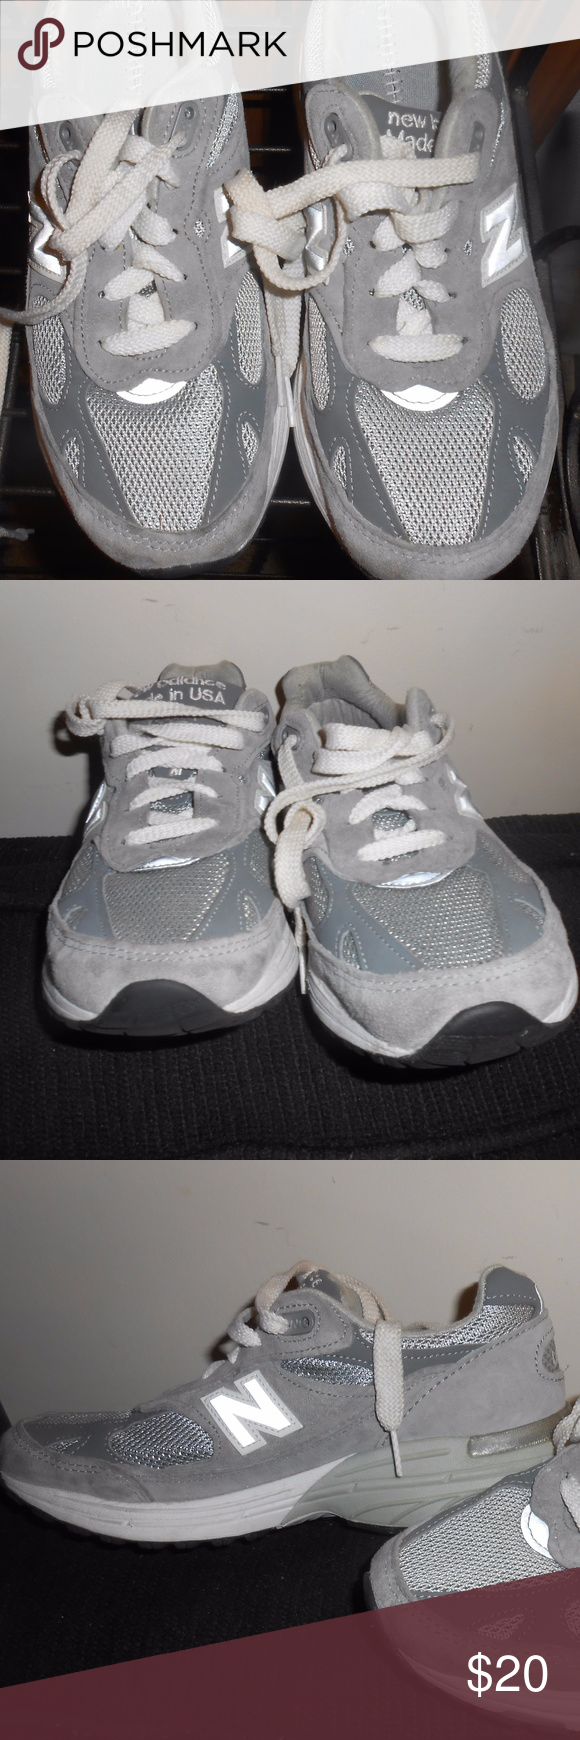 official photos bf1a0 0657b NEW BALANCE 993 (WR993GL) Running Shoes Grey/White - Size 6 ...